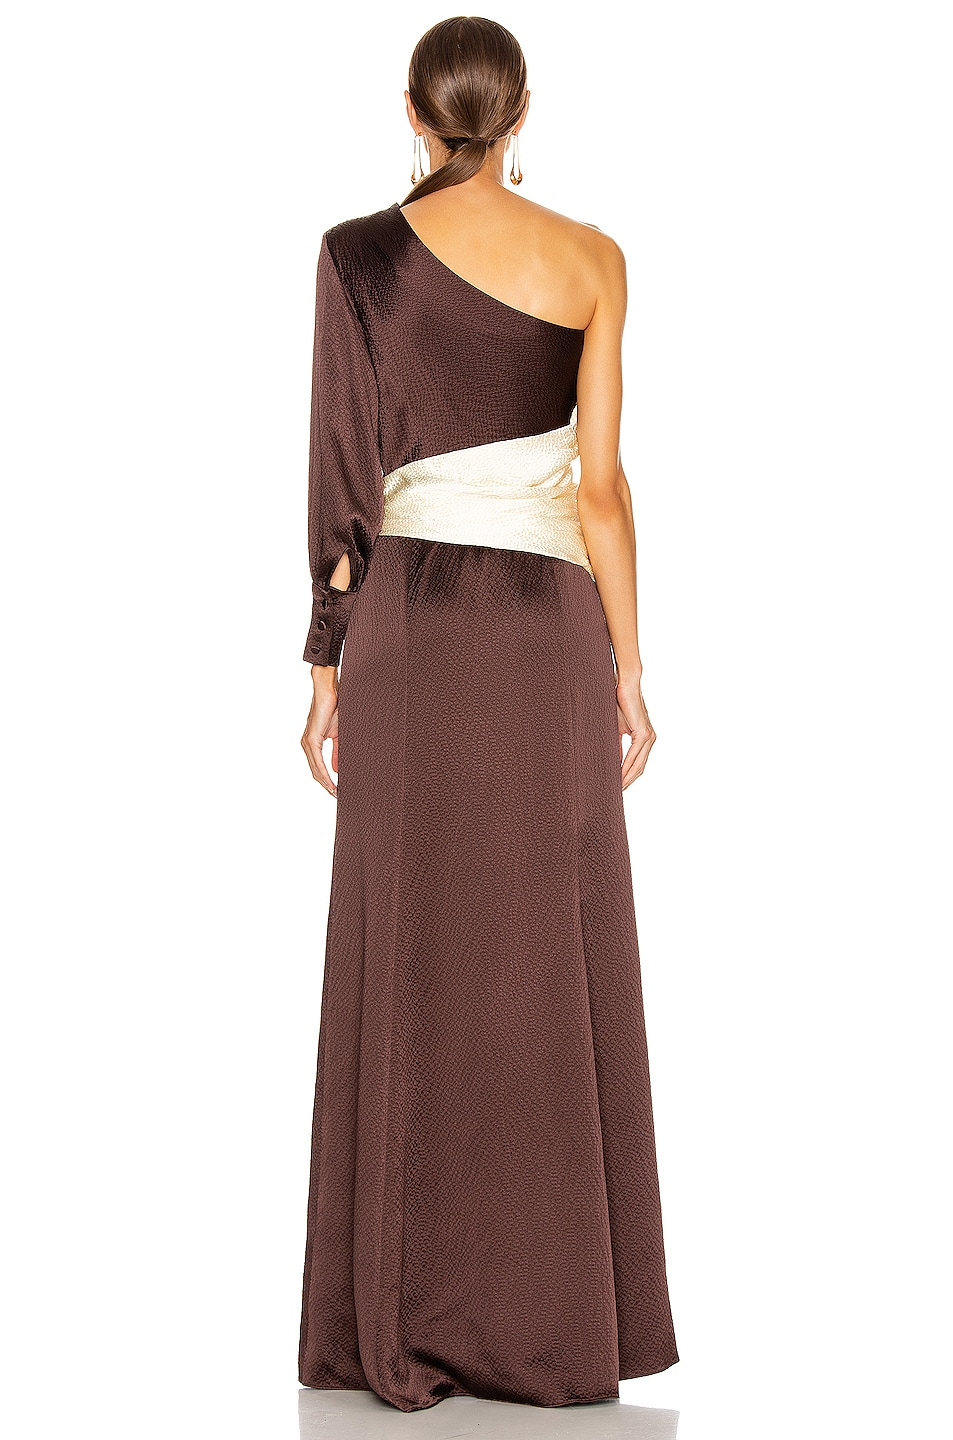 Image 4 of Rebecca De Ravenel One Shoulder Gown in Chocolate & Ivory